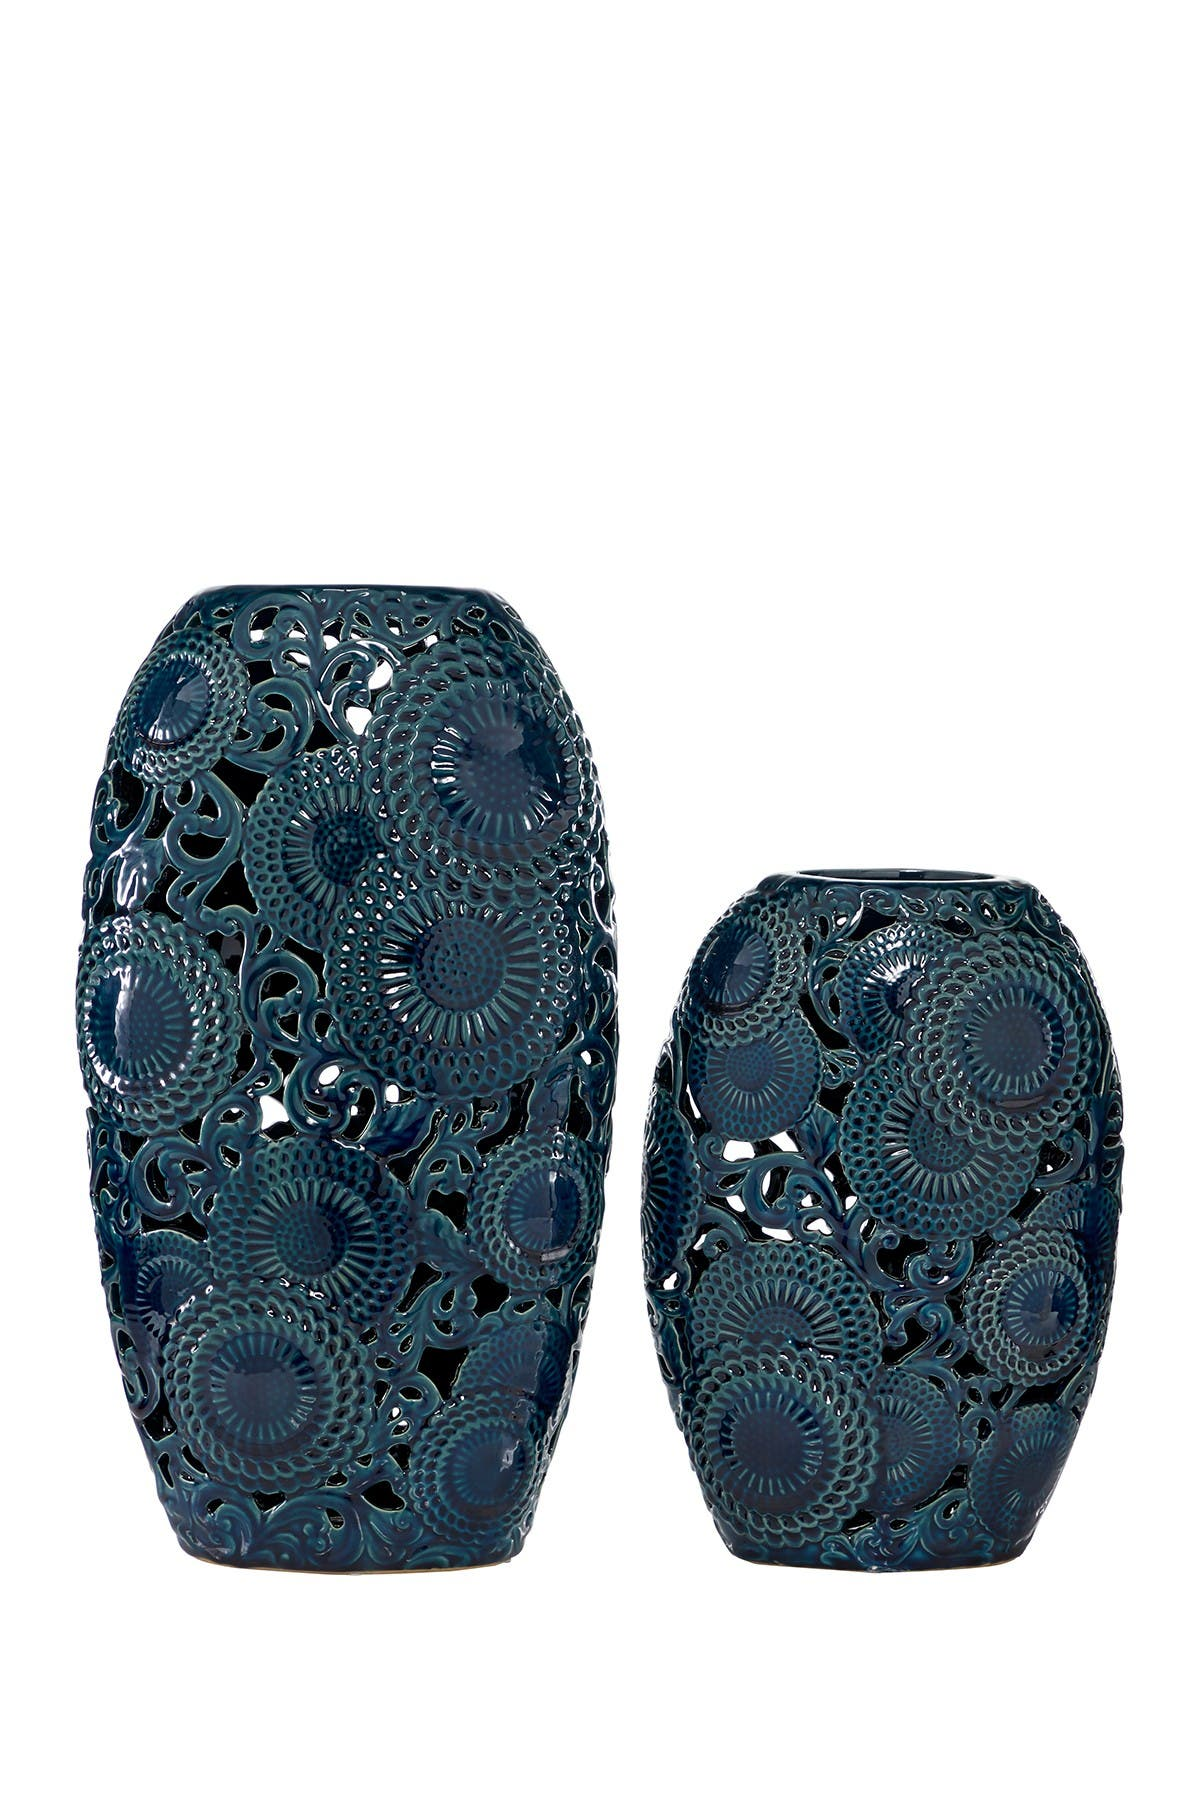 Image of Willow Row Blue Ceramic Vase With Decorative Holes - Set of 2